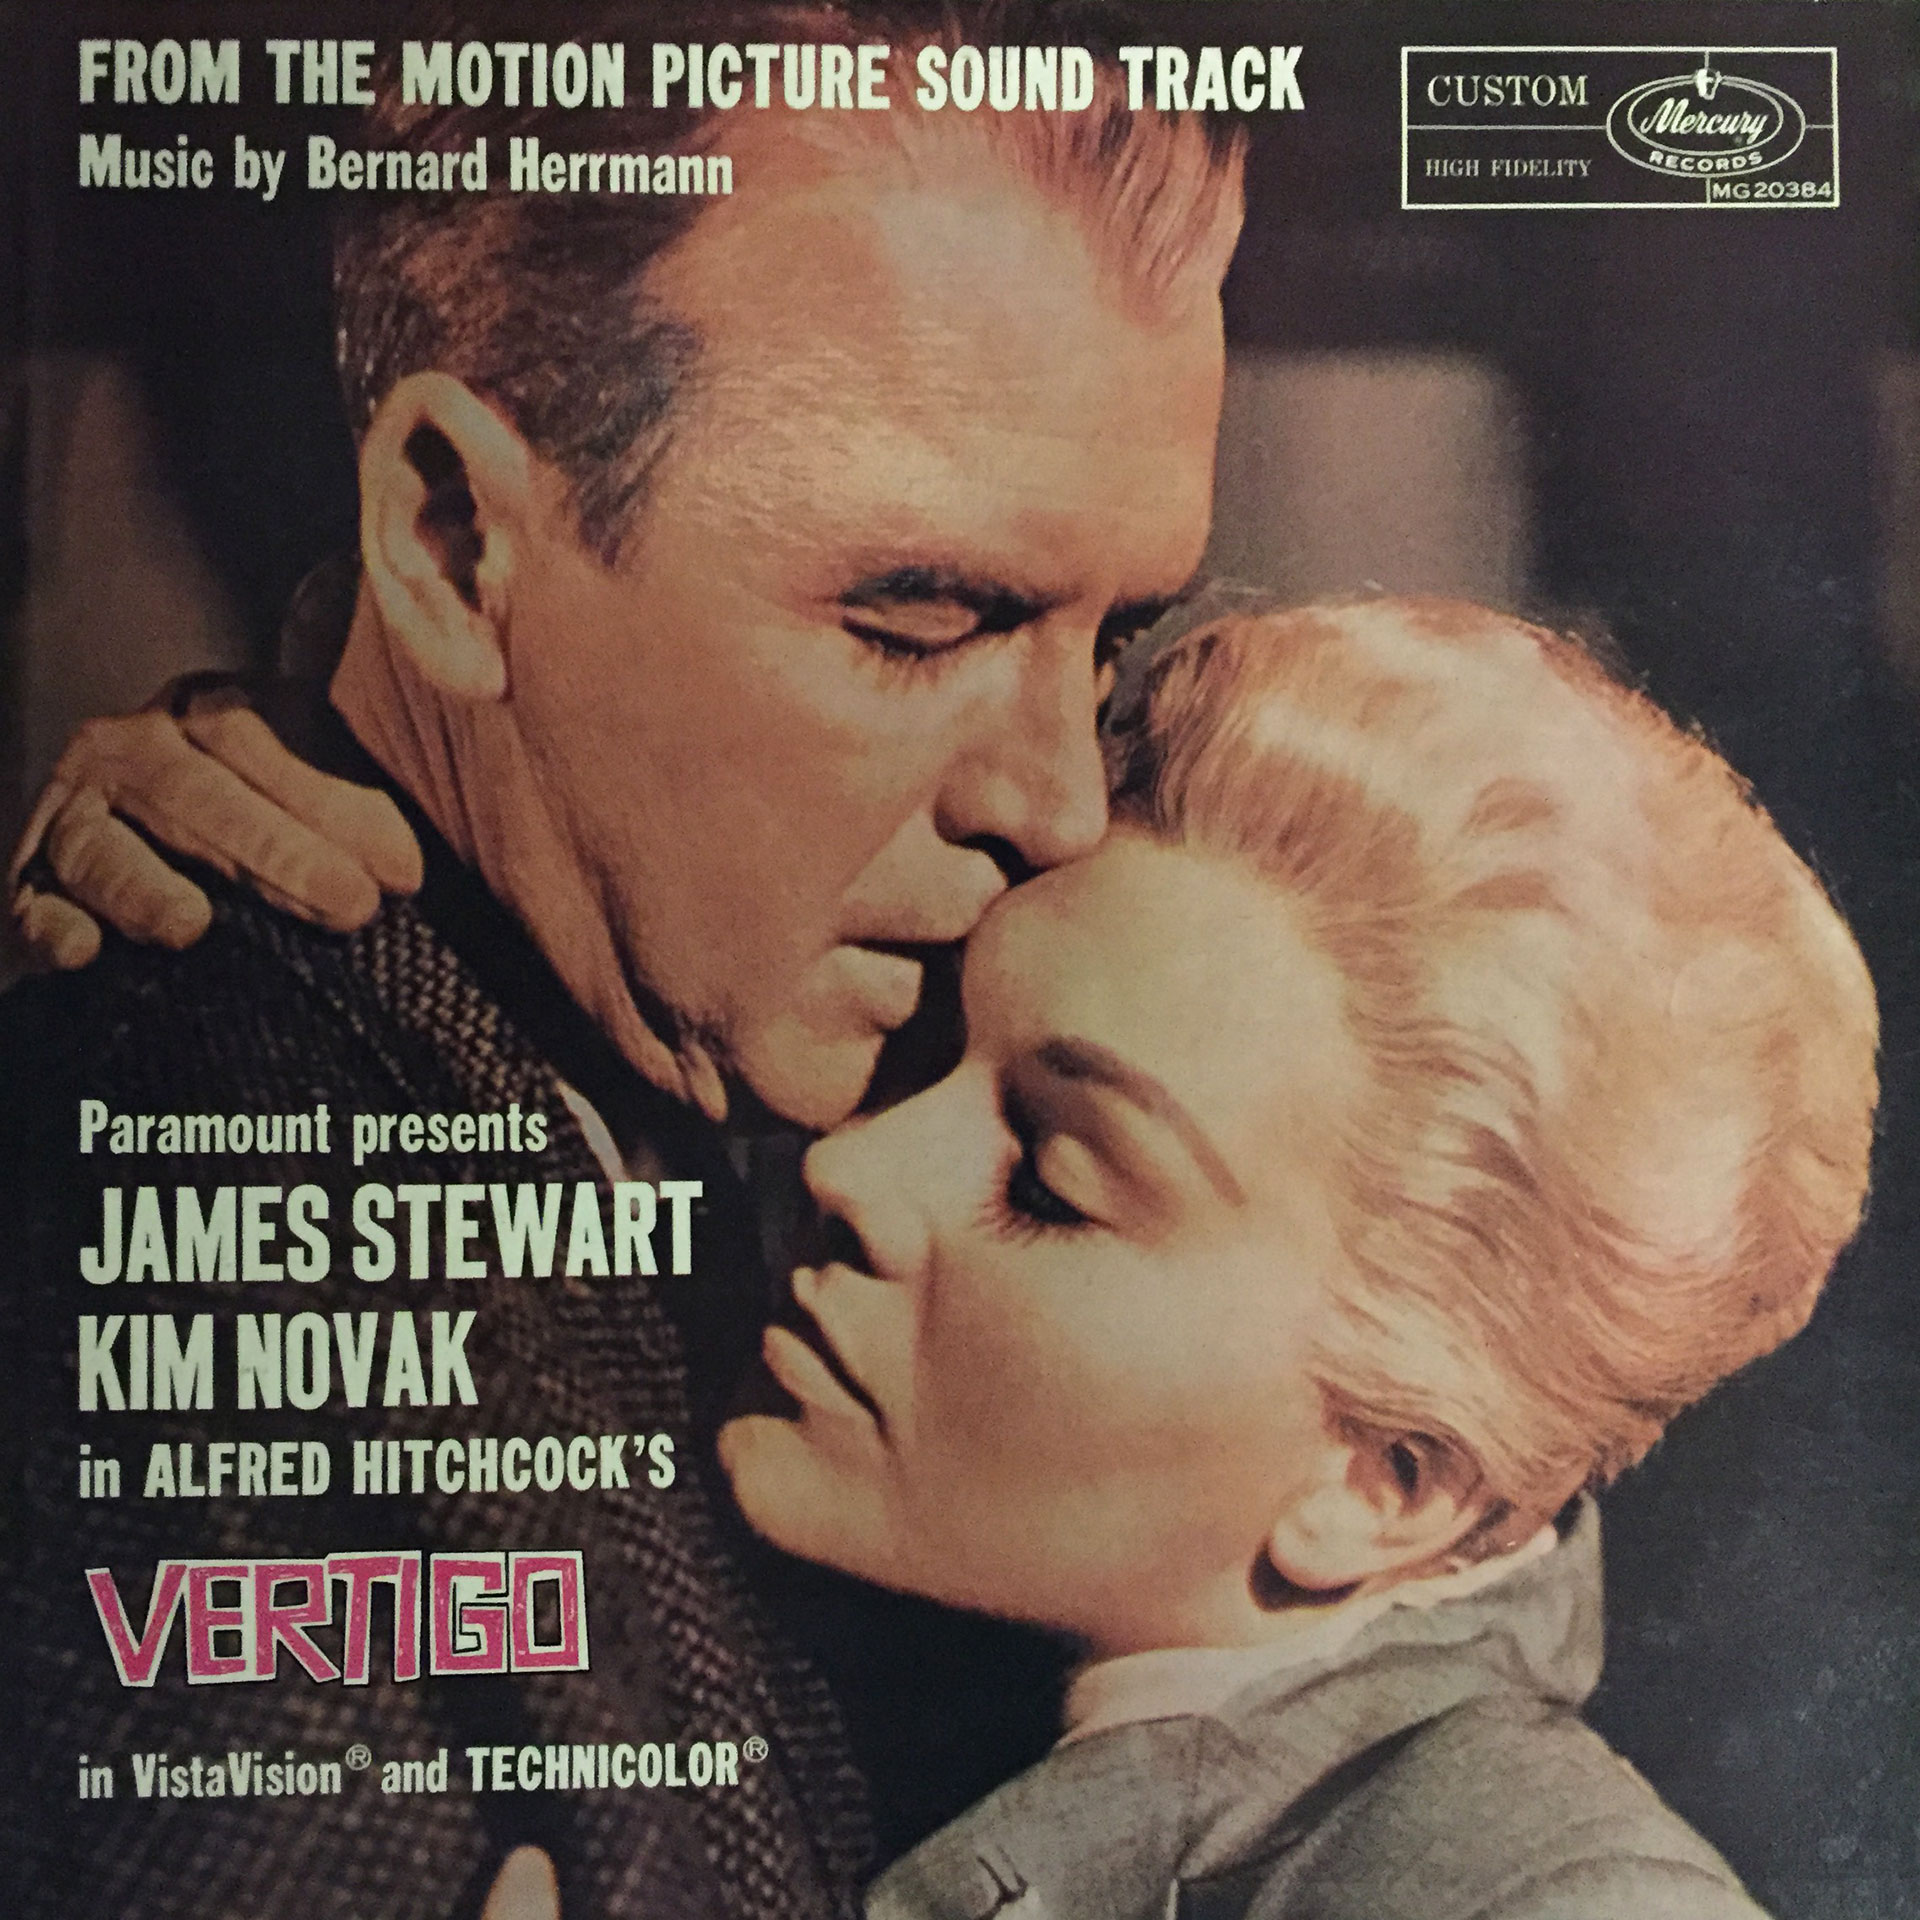 Bernard Herrmann's soundtrack to 'Vertigo.'